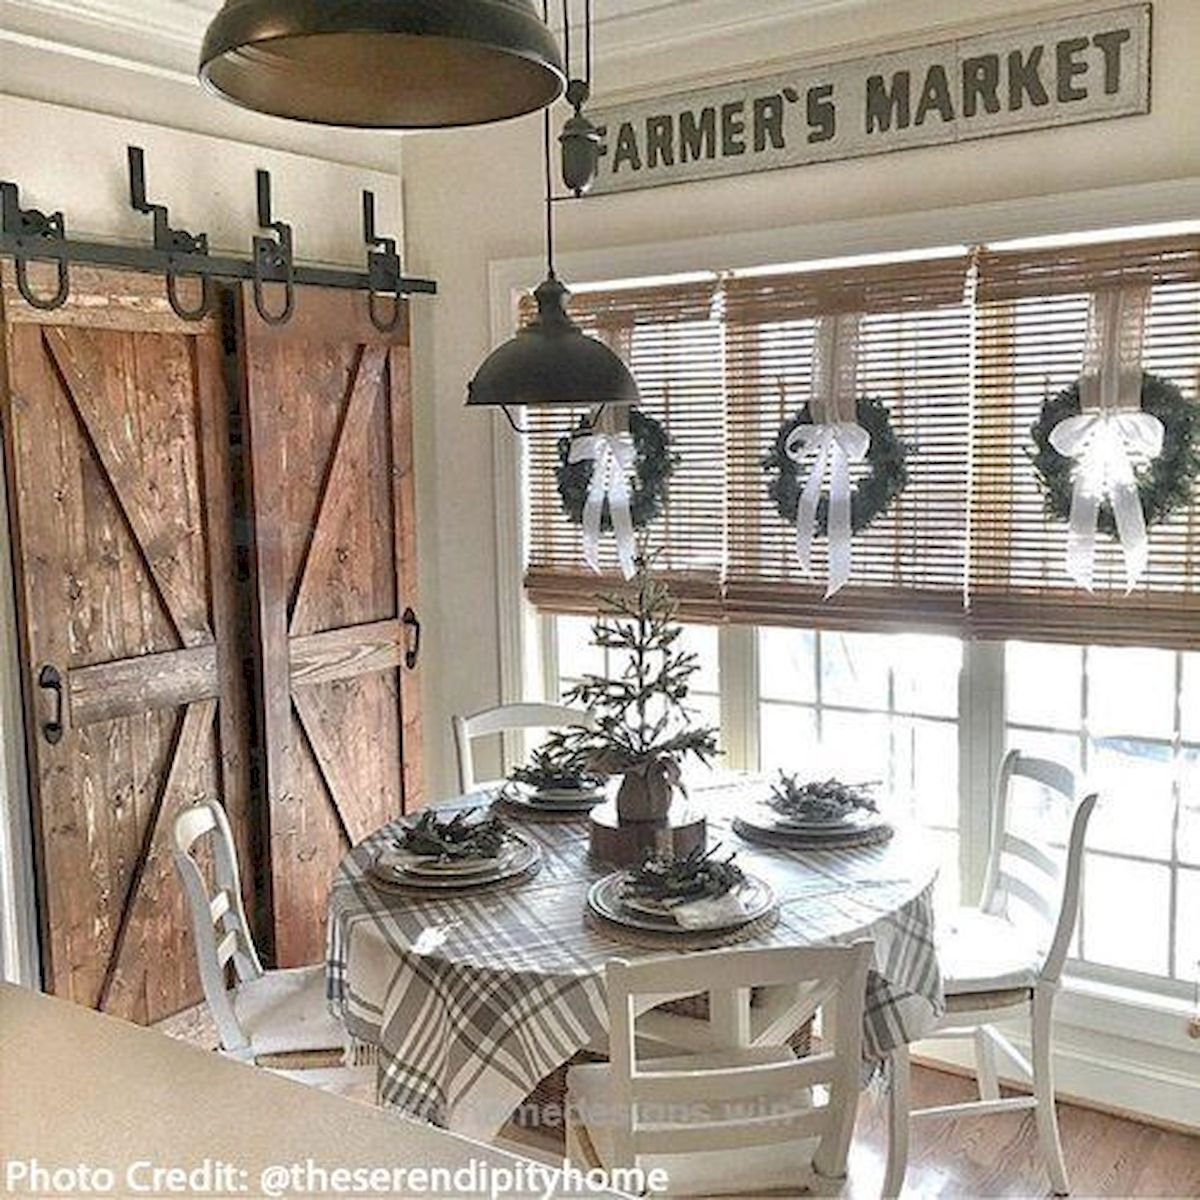 51 Farmhouse Wall Decor Ideas for Dinning Room (40)